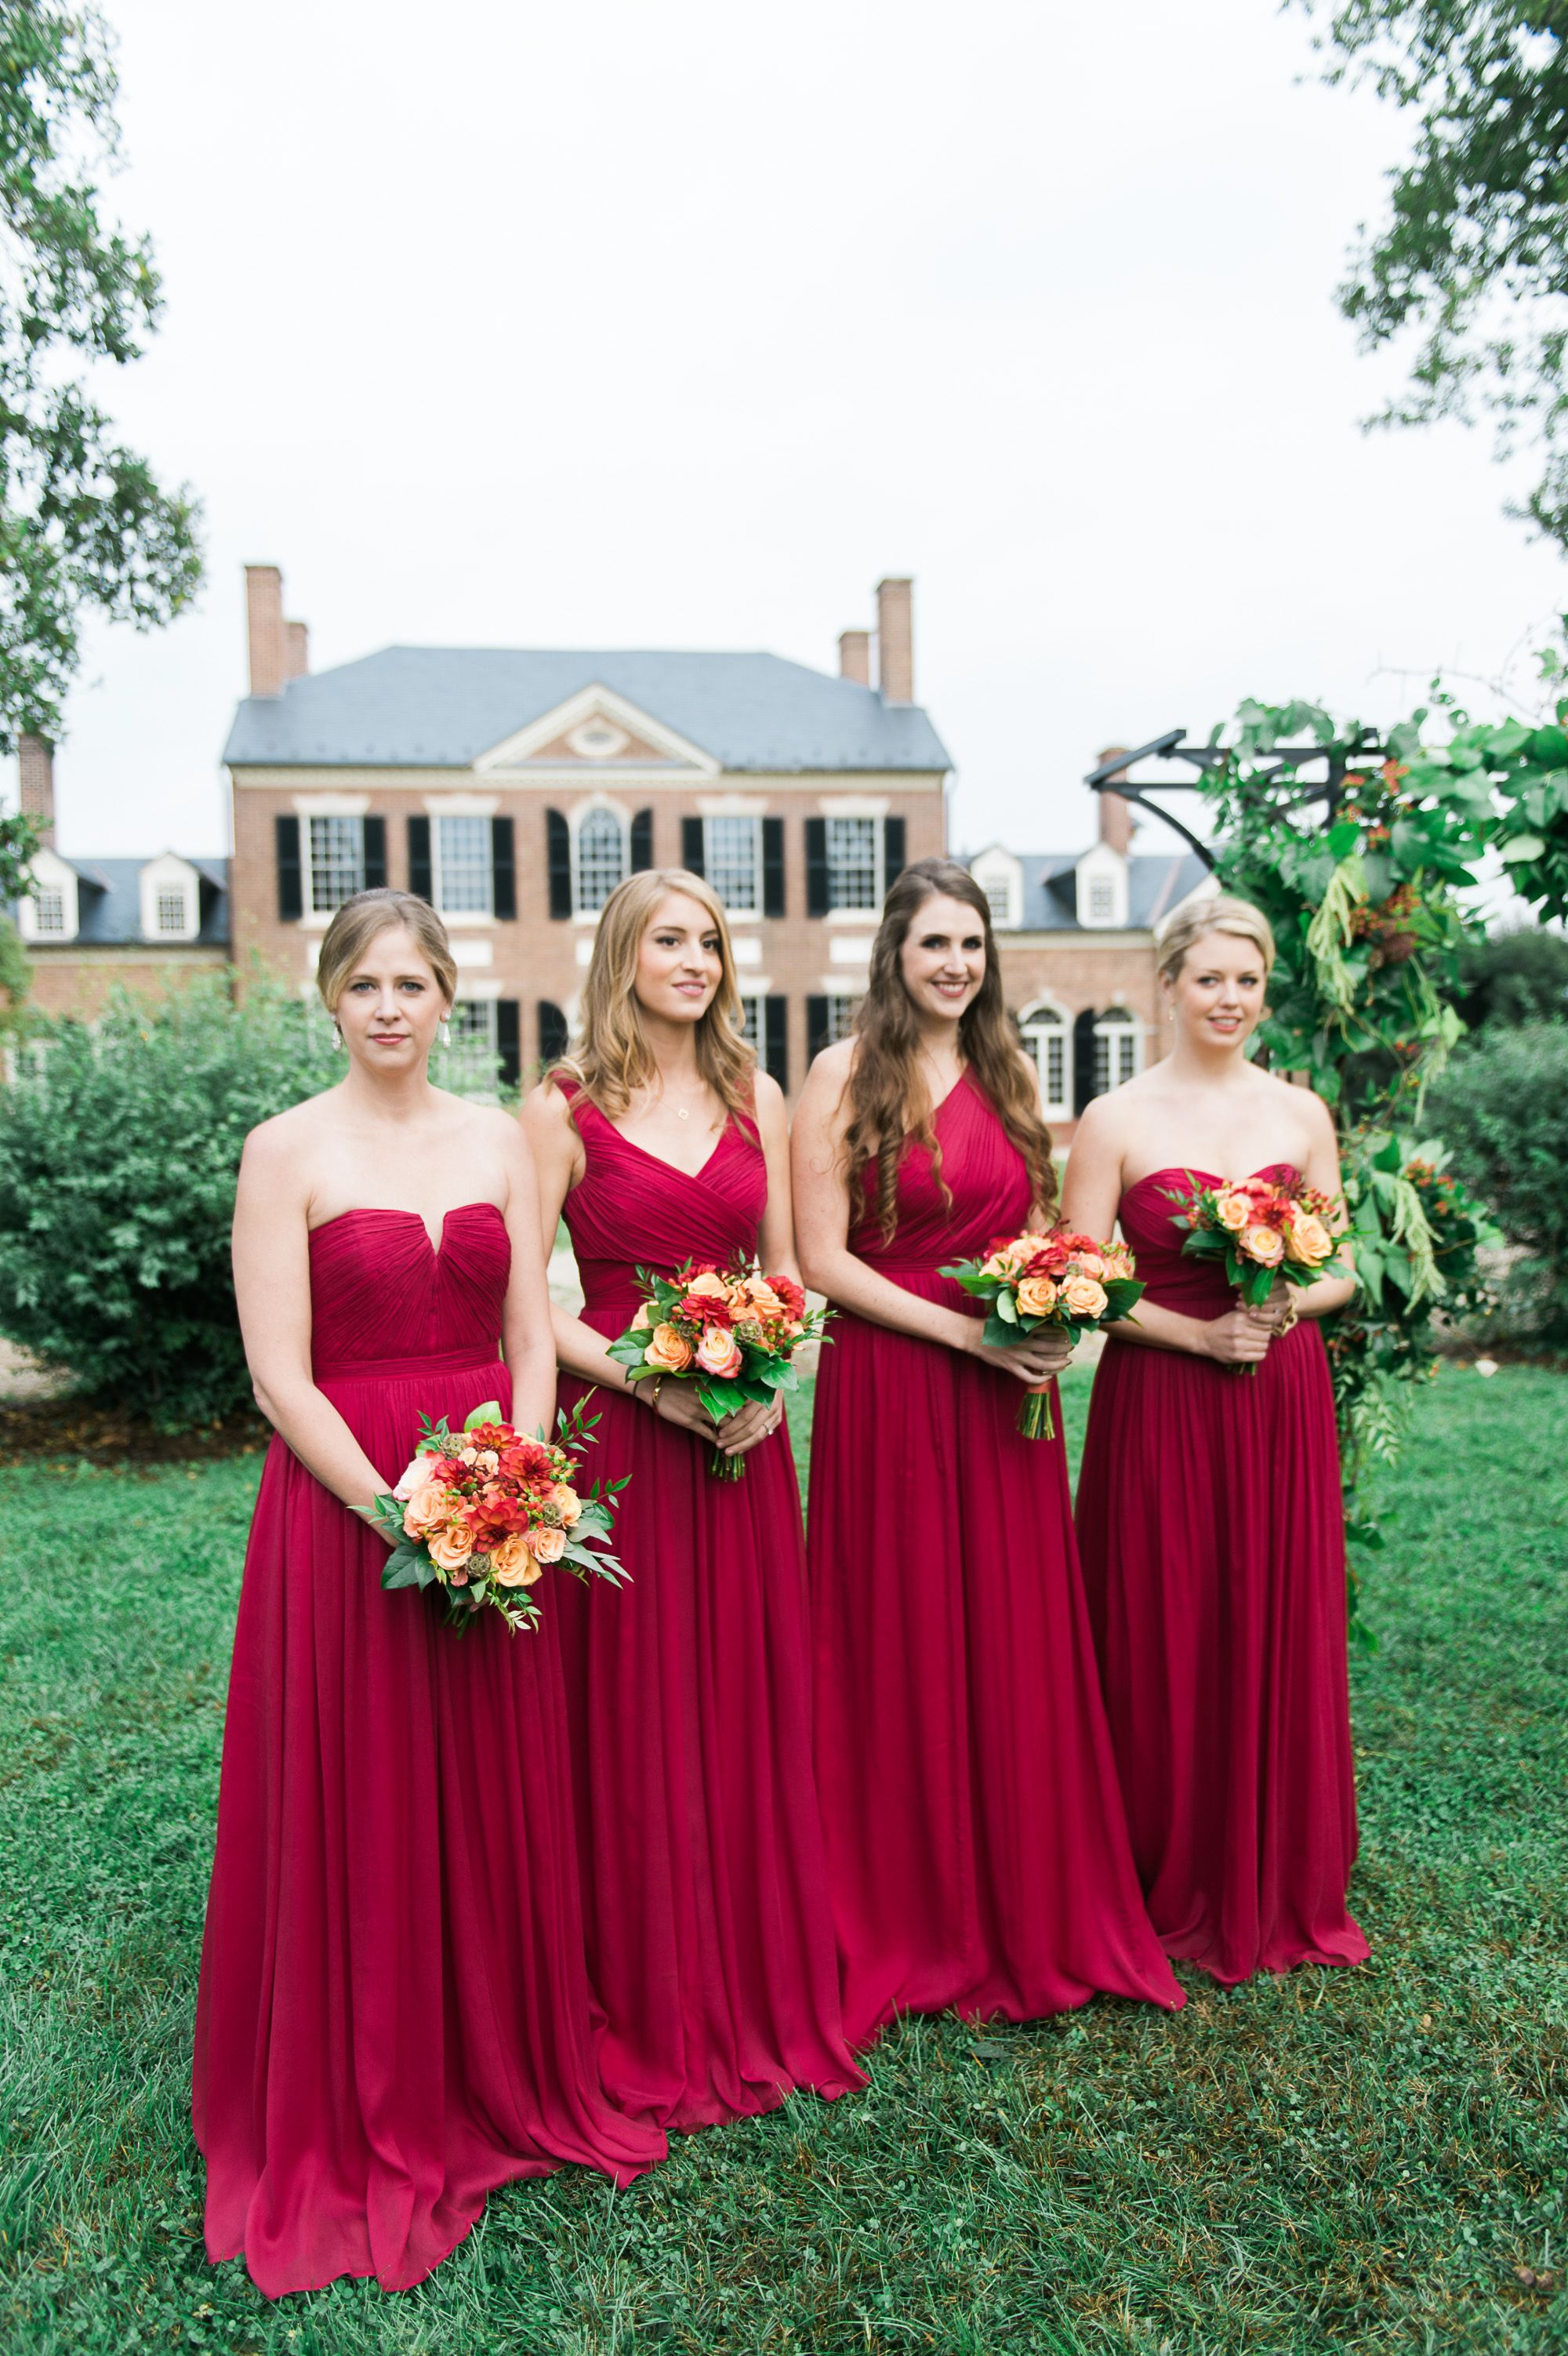 Jew floor length burgundy bridesmaid dresses bridesmaids jew floor length burgundy bridesmaid dresses ombrellifo Image collections